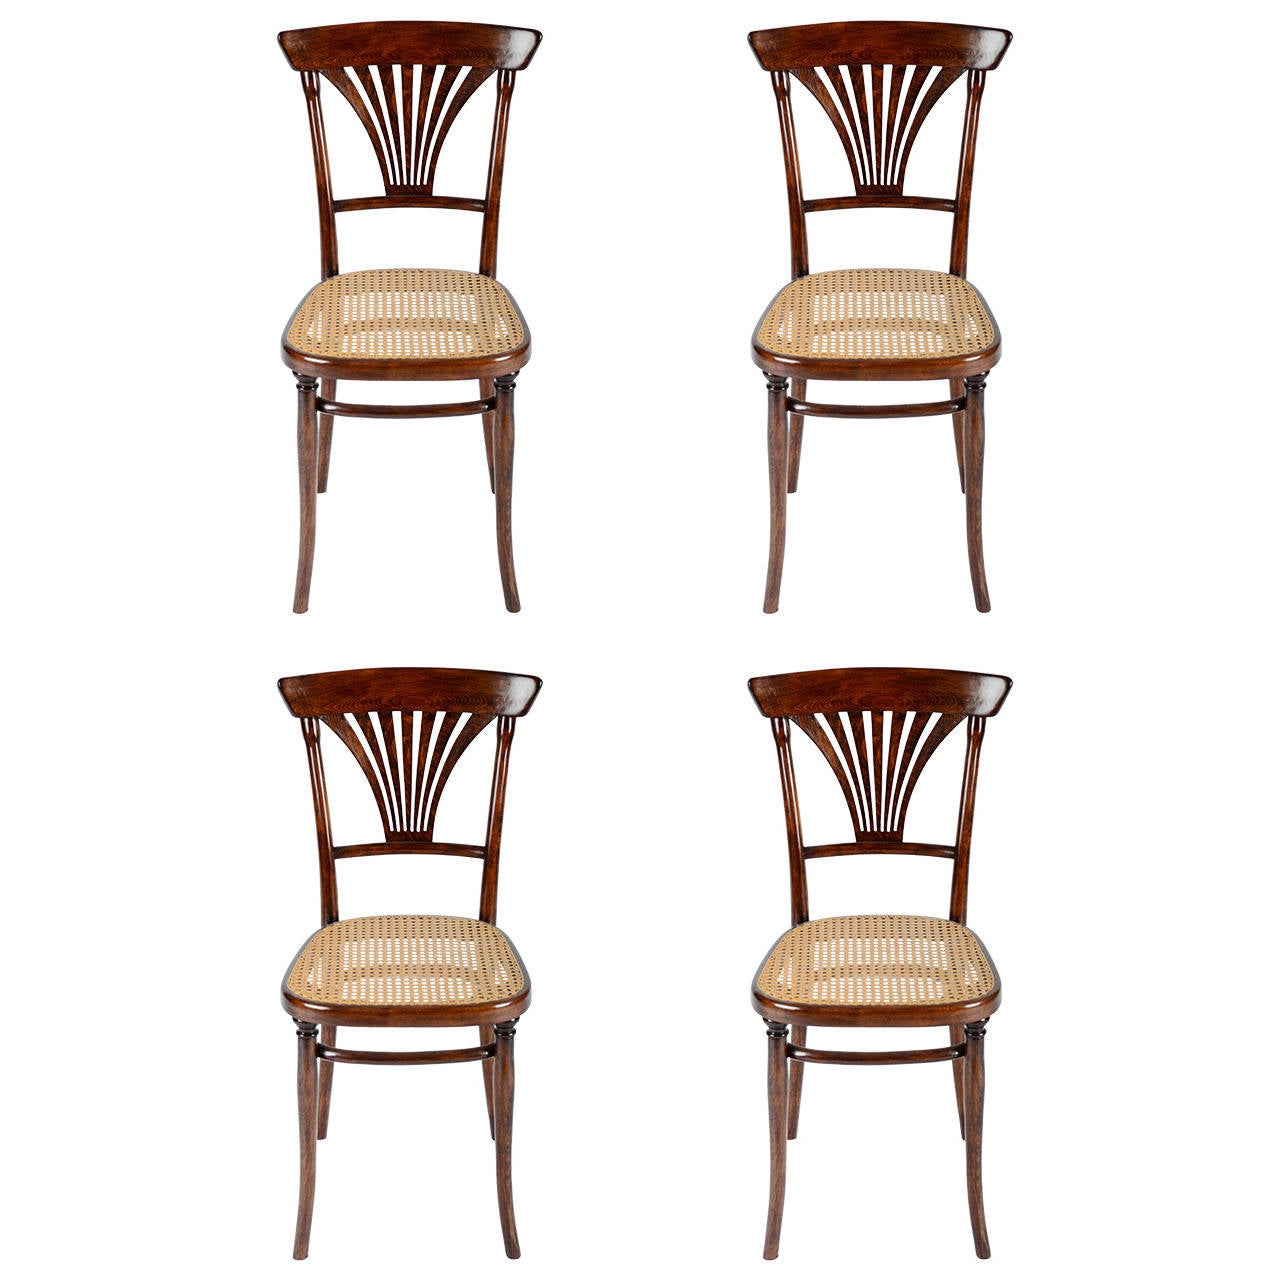 Thonet No. 221 Set of Four Chairs